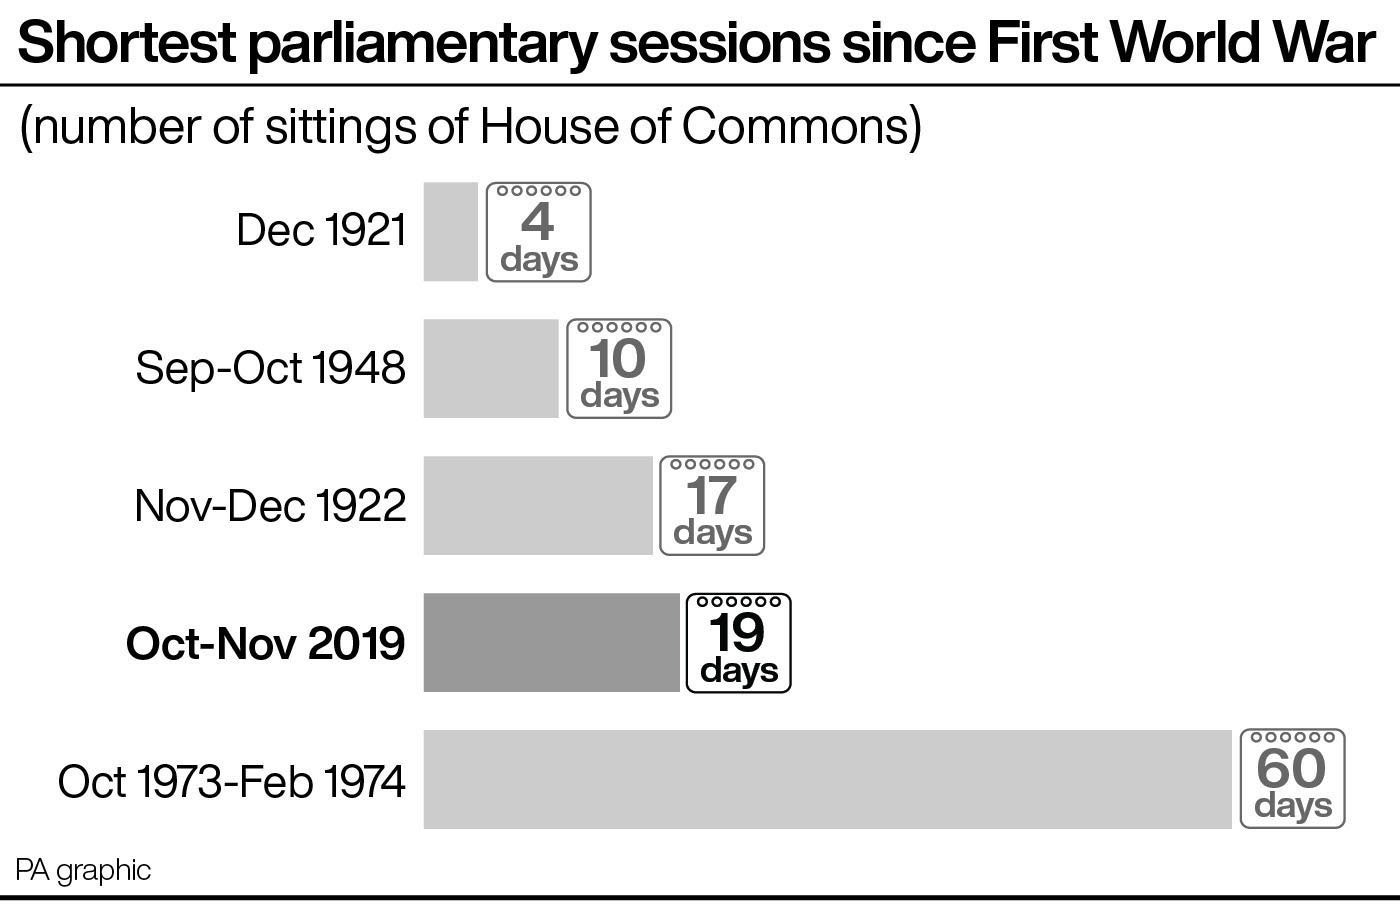 Shortest parliamentary sessions since First World War